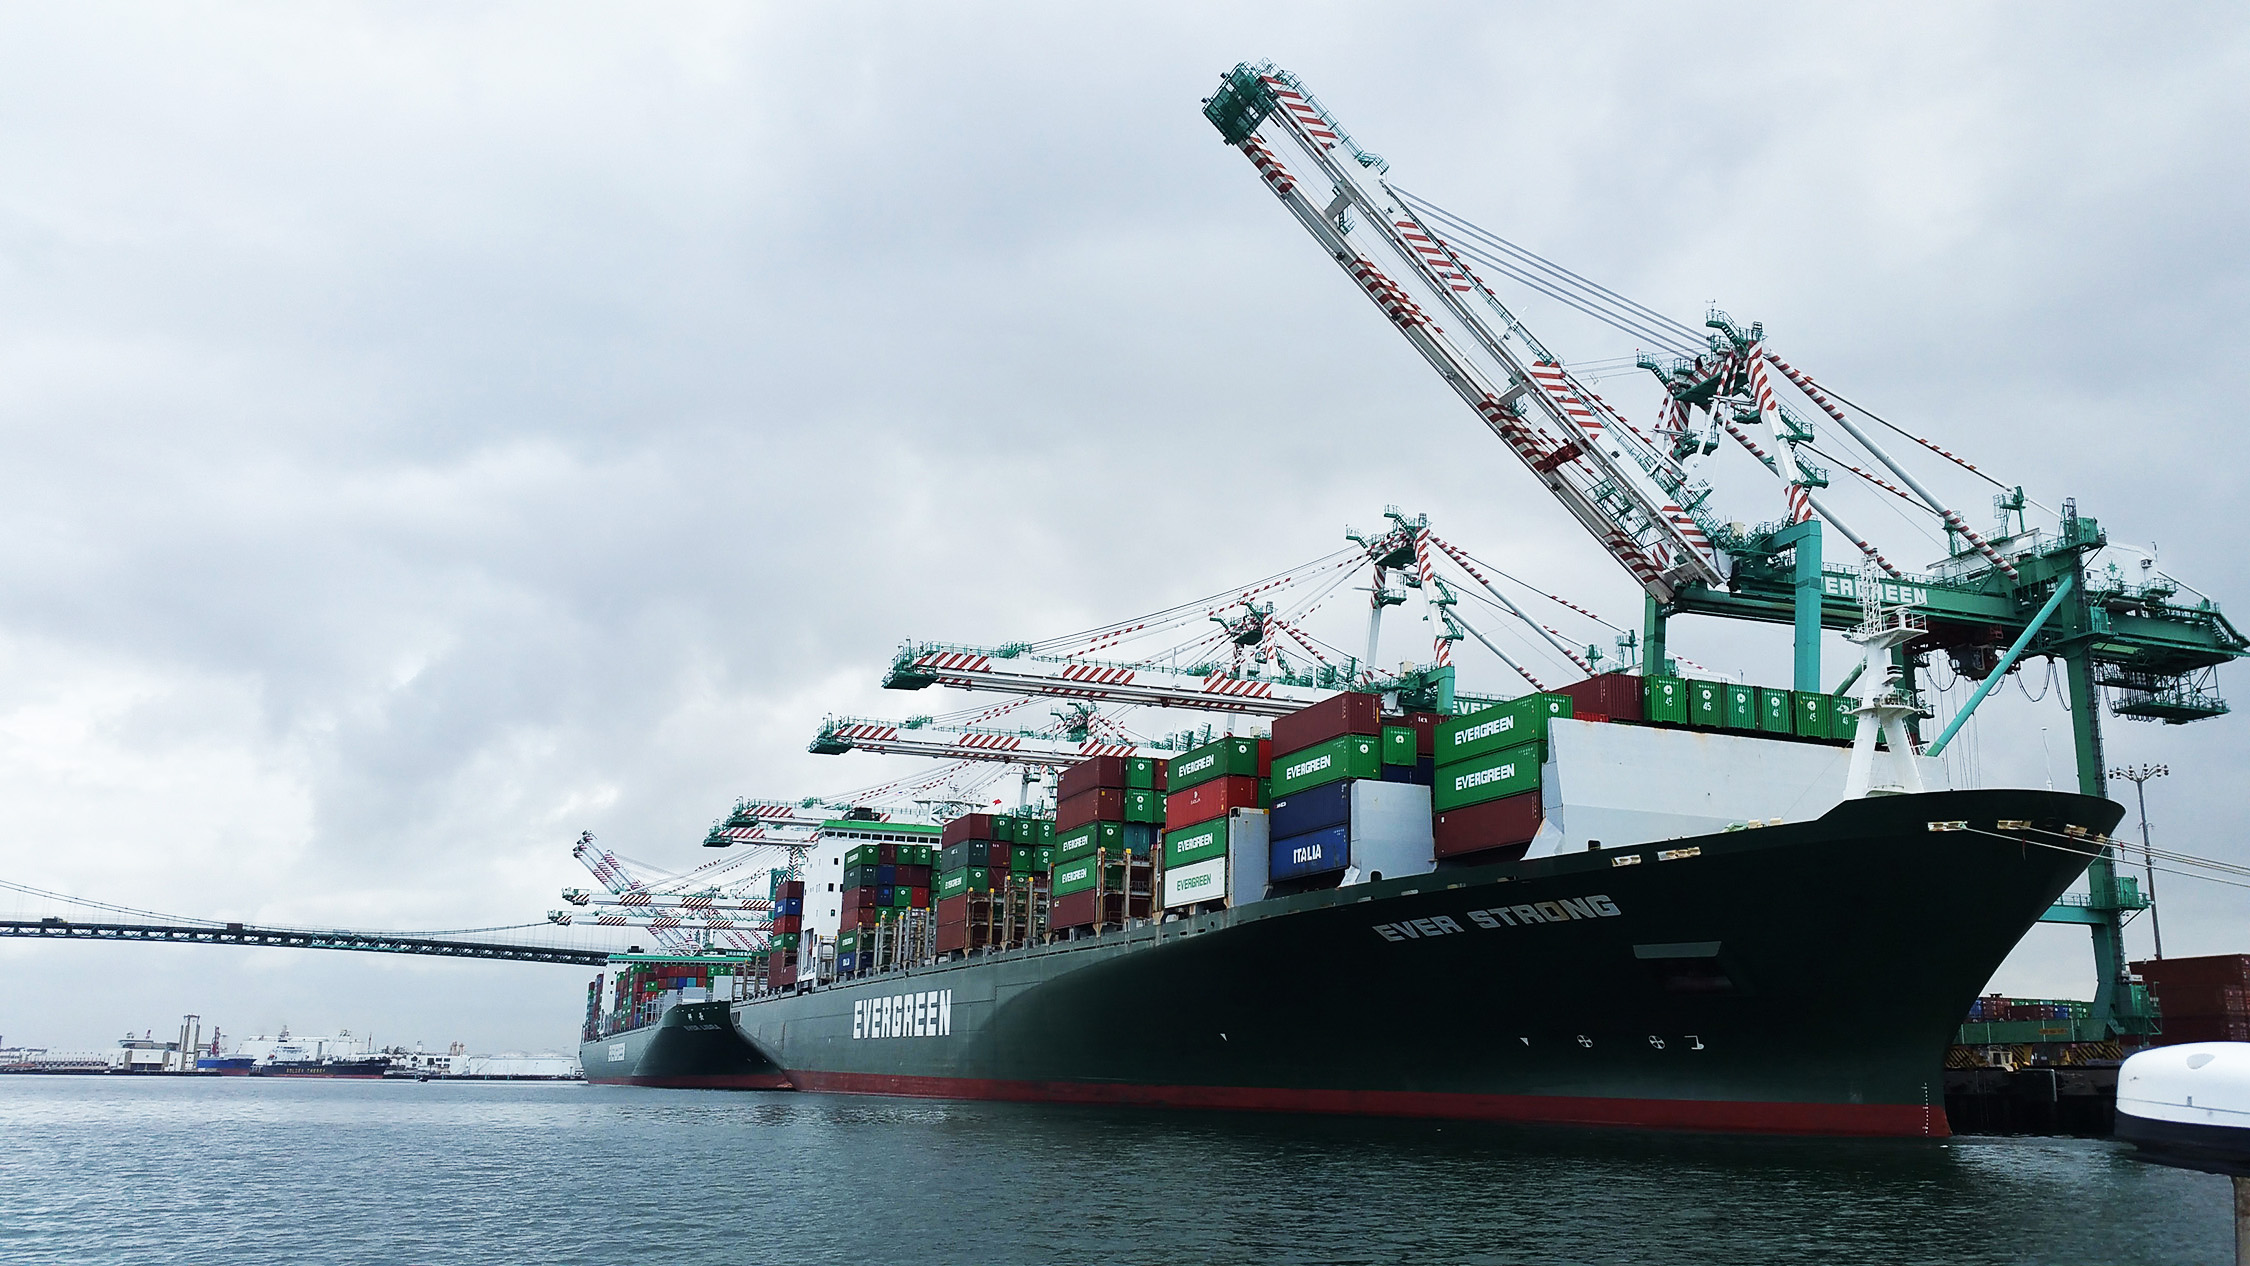 Cargo ship and cranes in the Port of Los Angeles